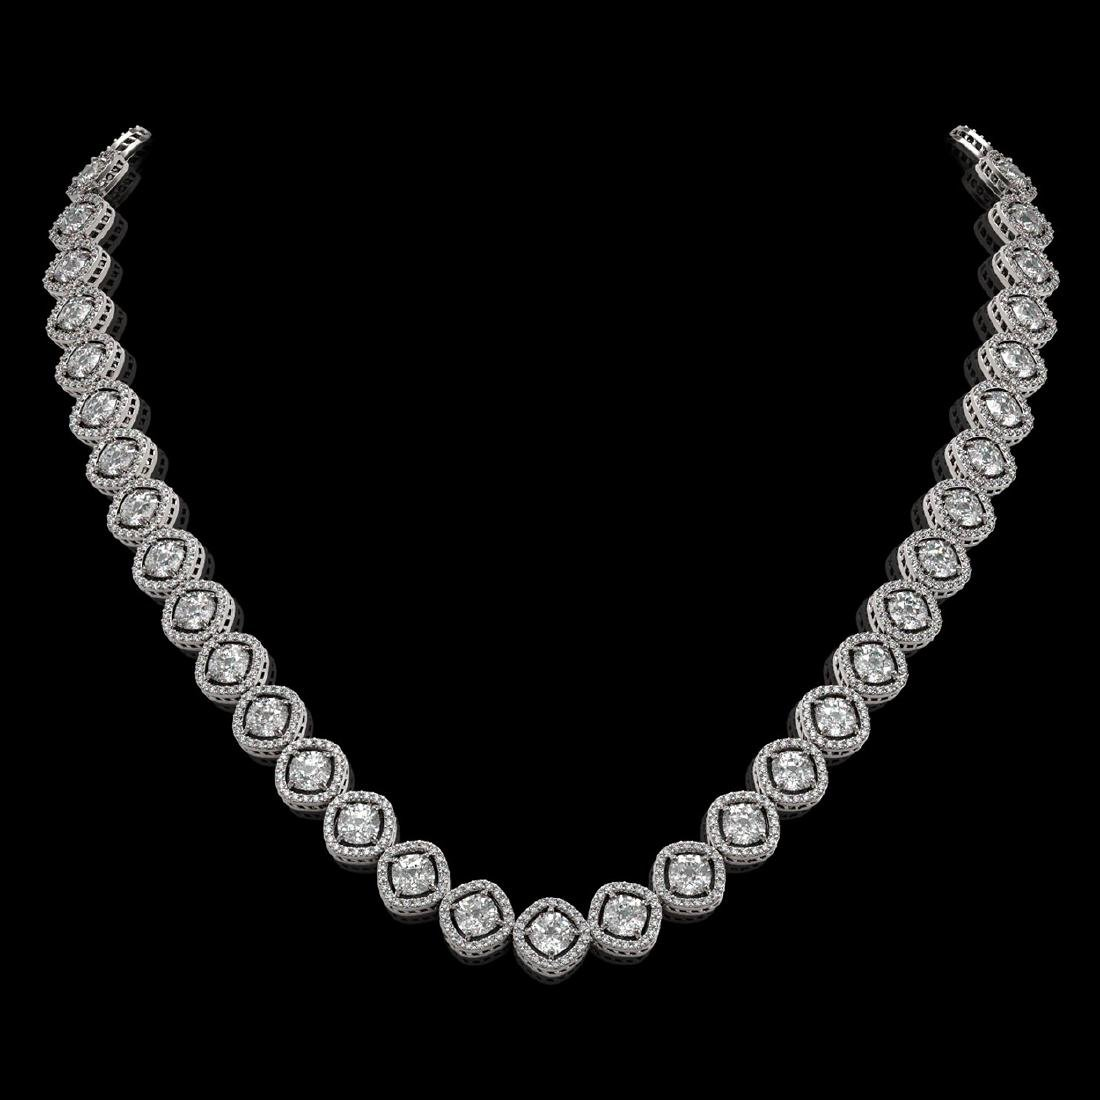 29.37 CTW Cushion Cut Diamond Designer Necklace 18K